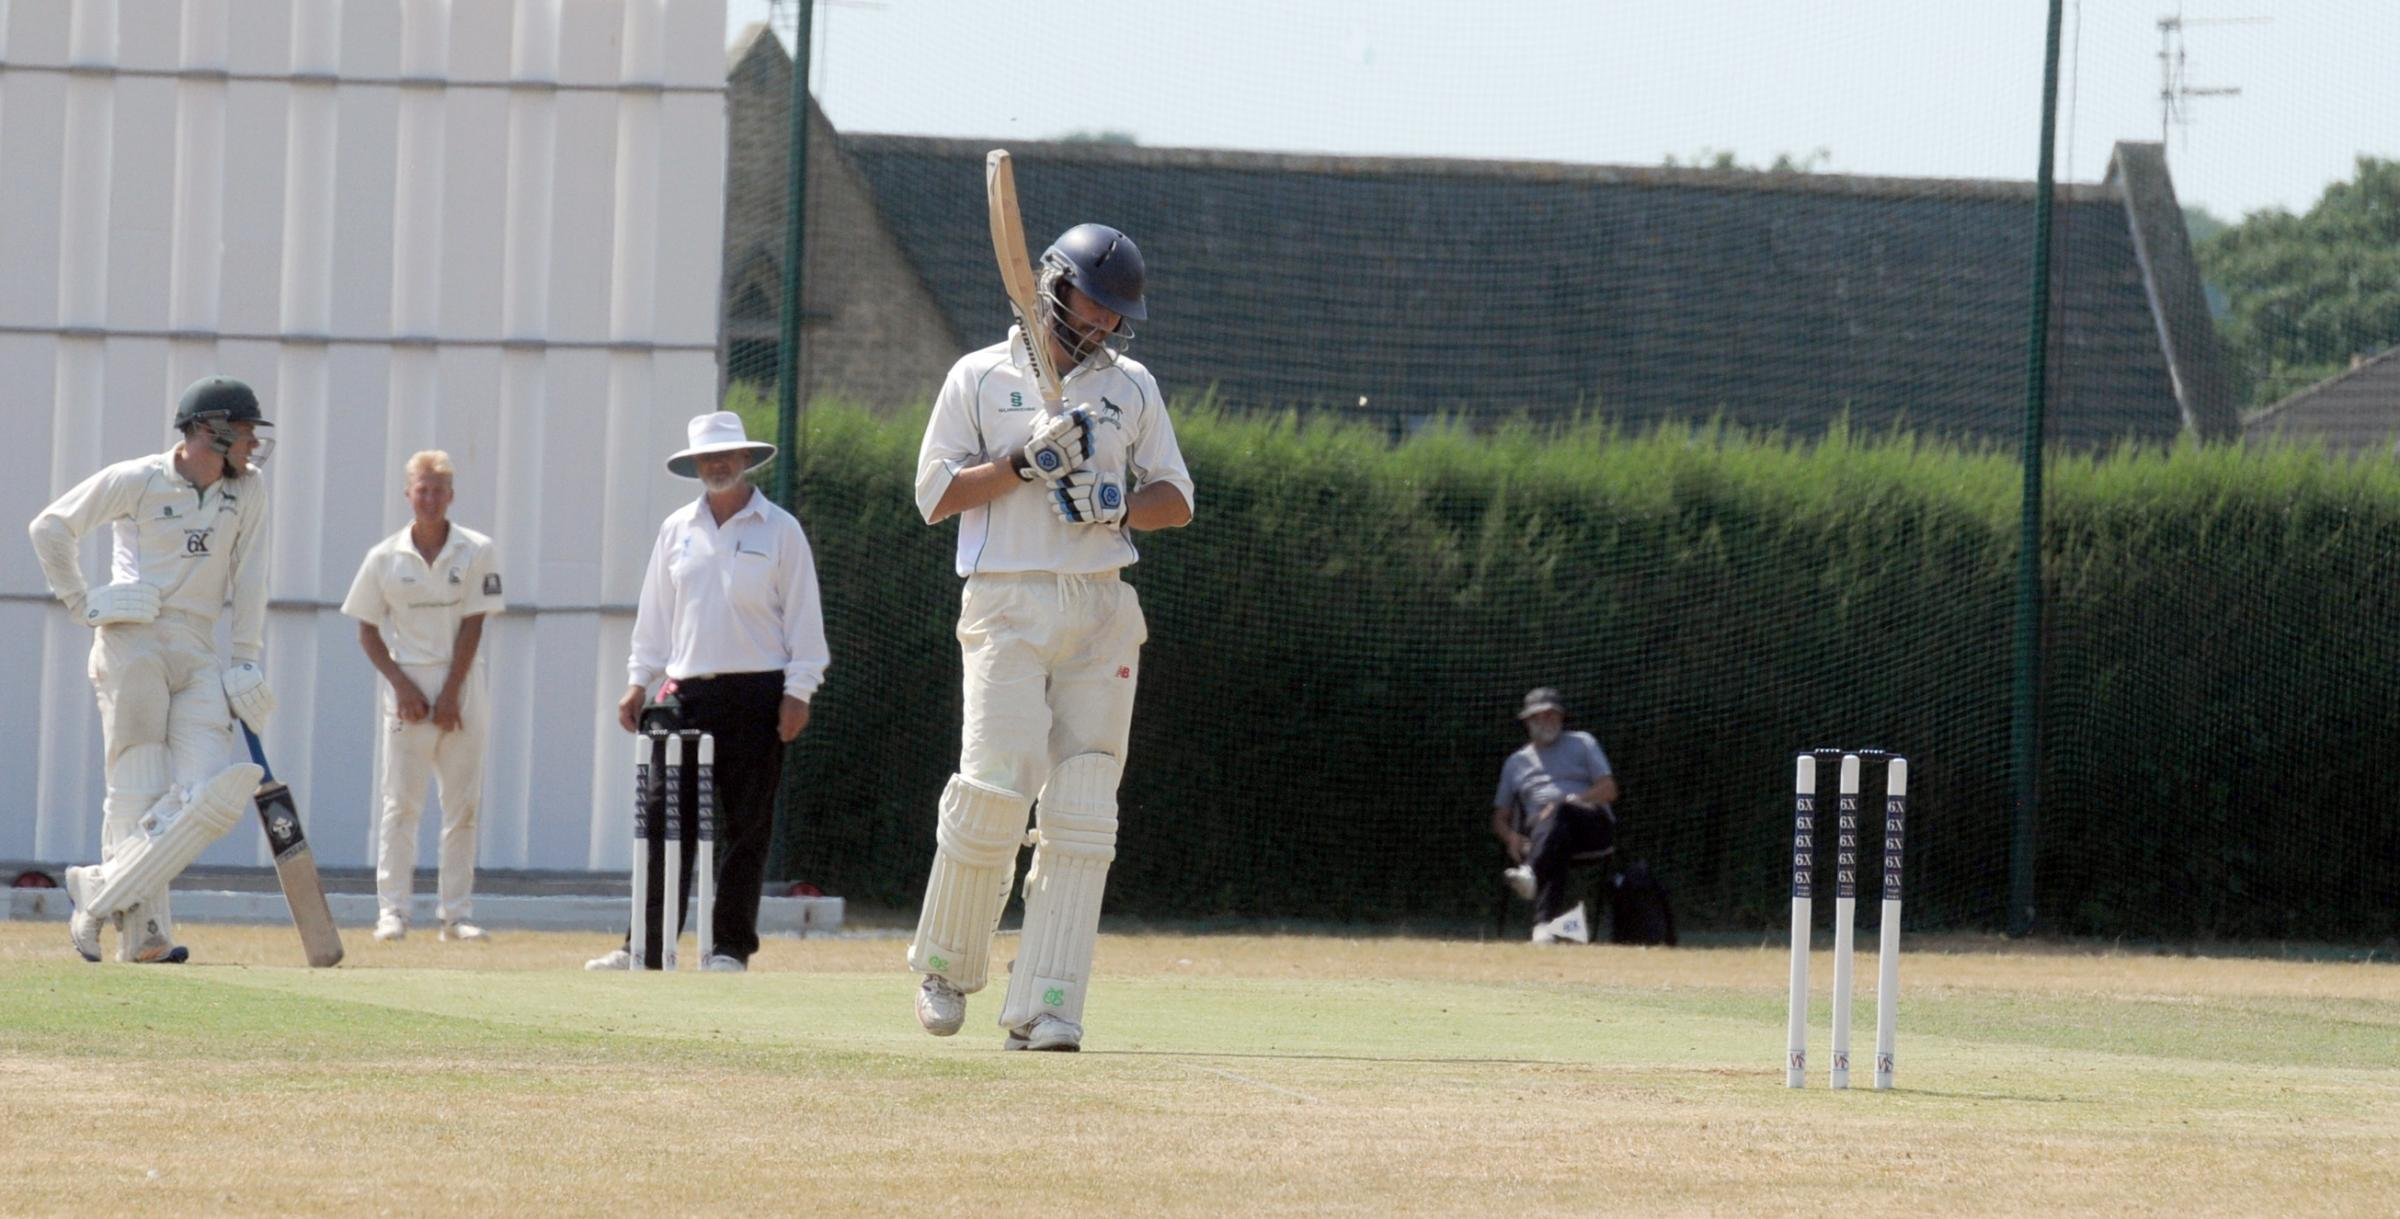 Wiltshire skipper Ed Young on day two of their Unicorns Championship Western Division clash against Berkshire at Corsham. Photo: Siobhan Boyle SMB2467/11.